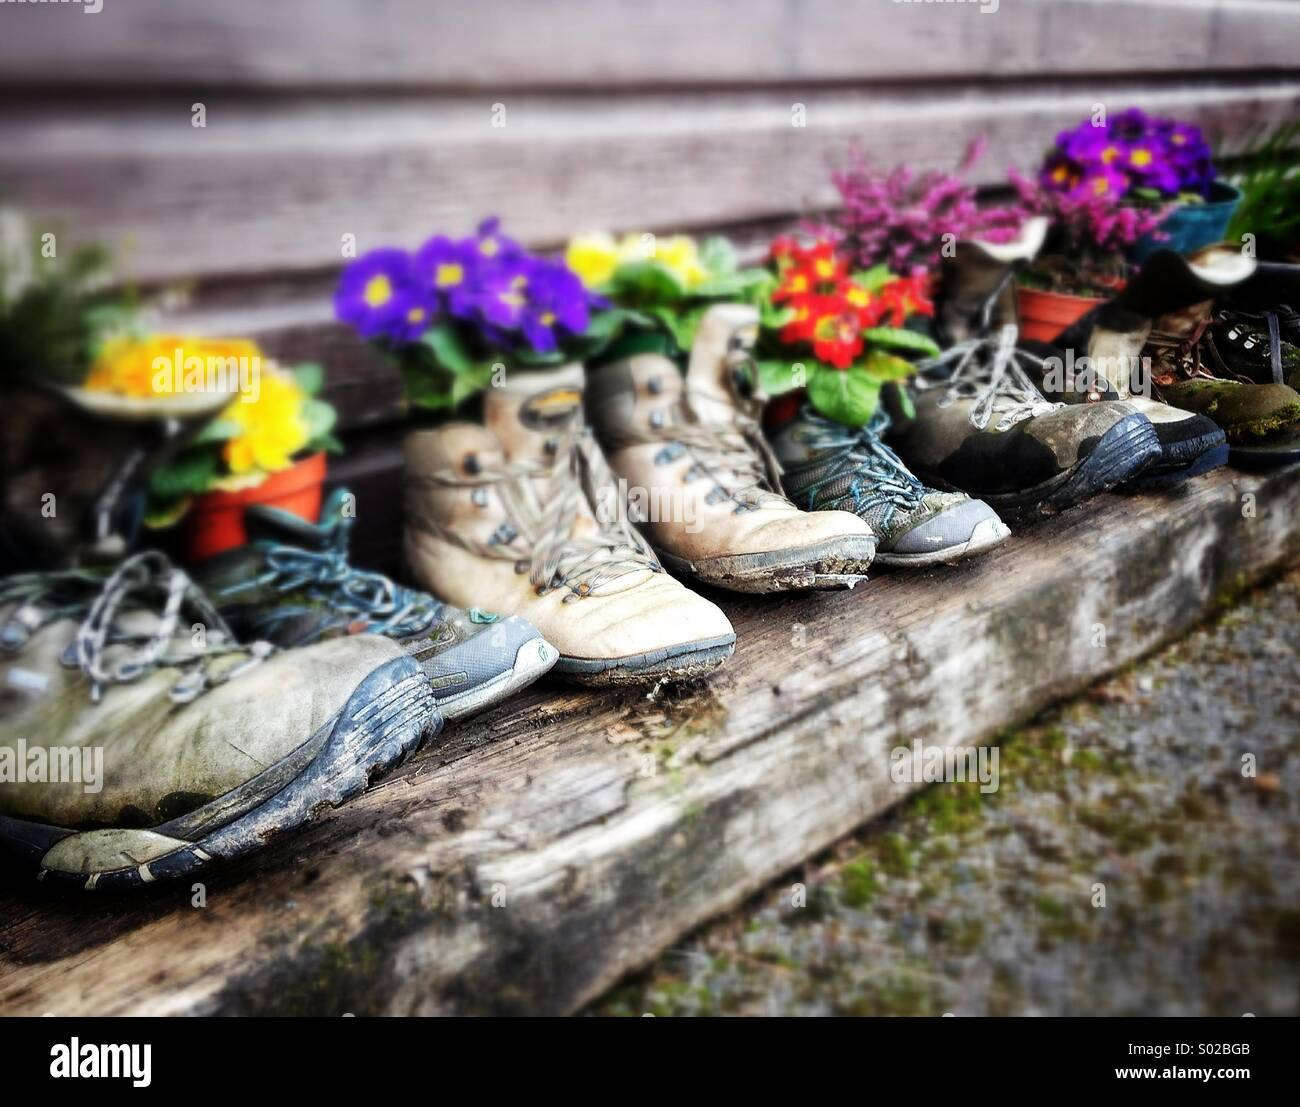 Flowers in old walking boots - Stock Image